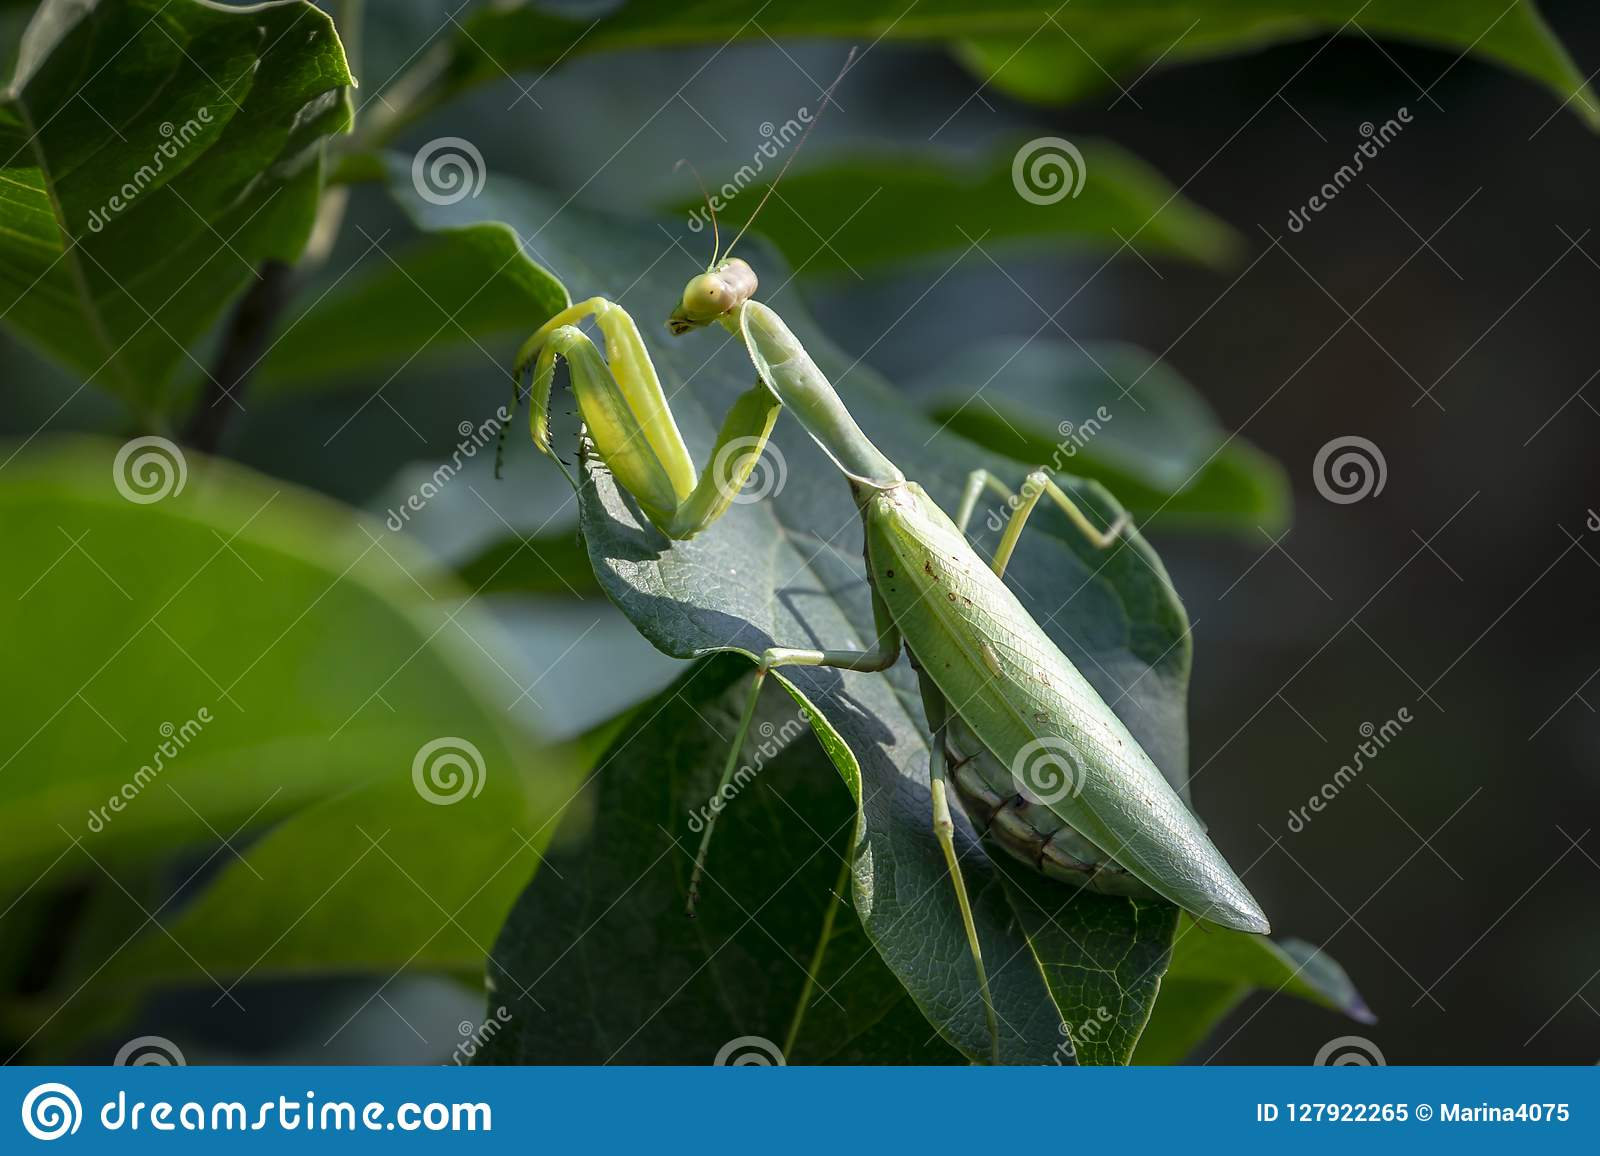 Pregnant Female Praying Mantis Or Mantis Religiosa In A Natural